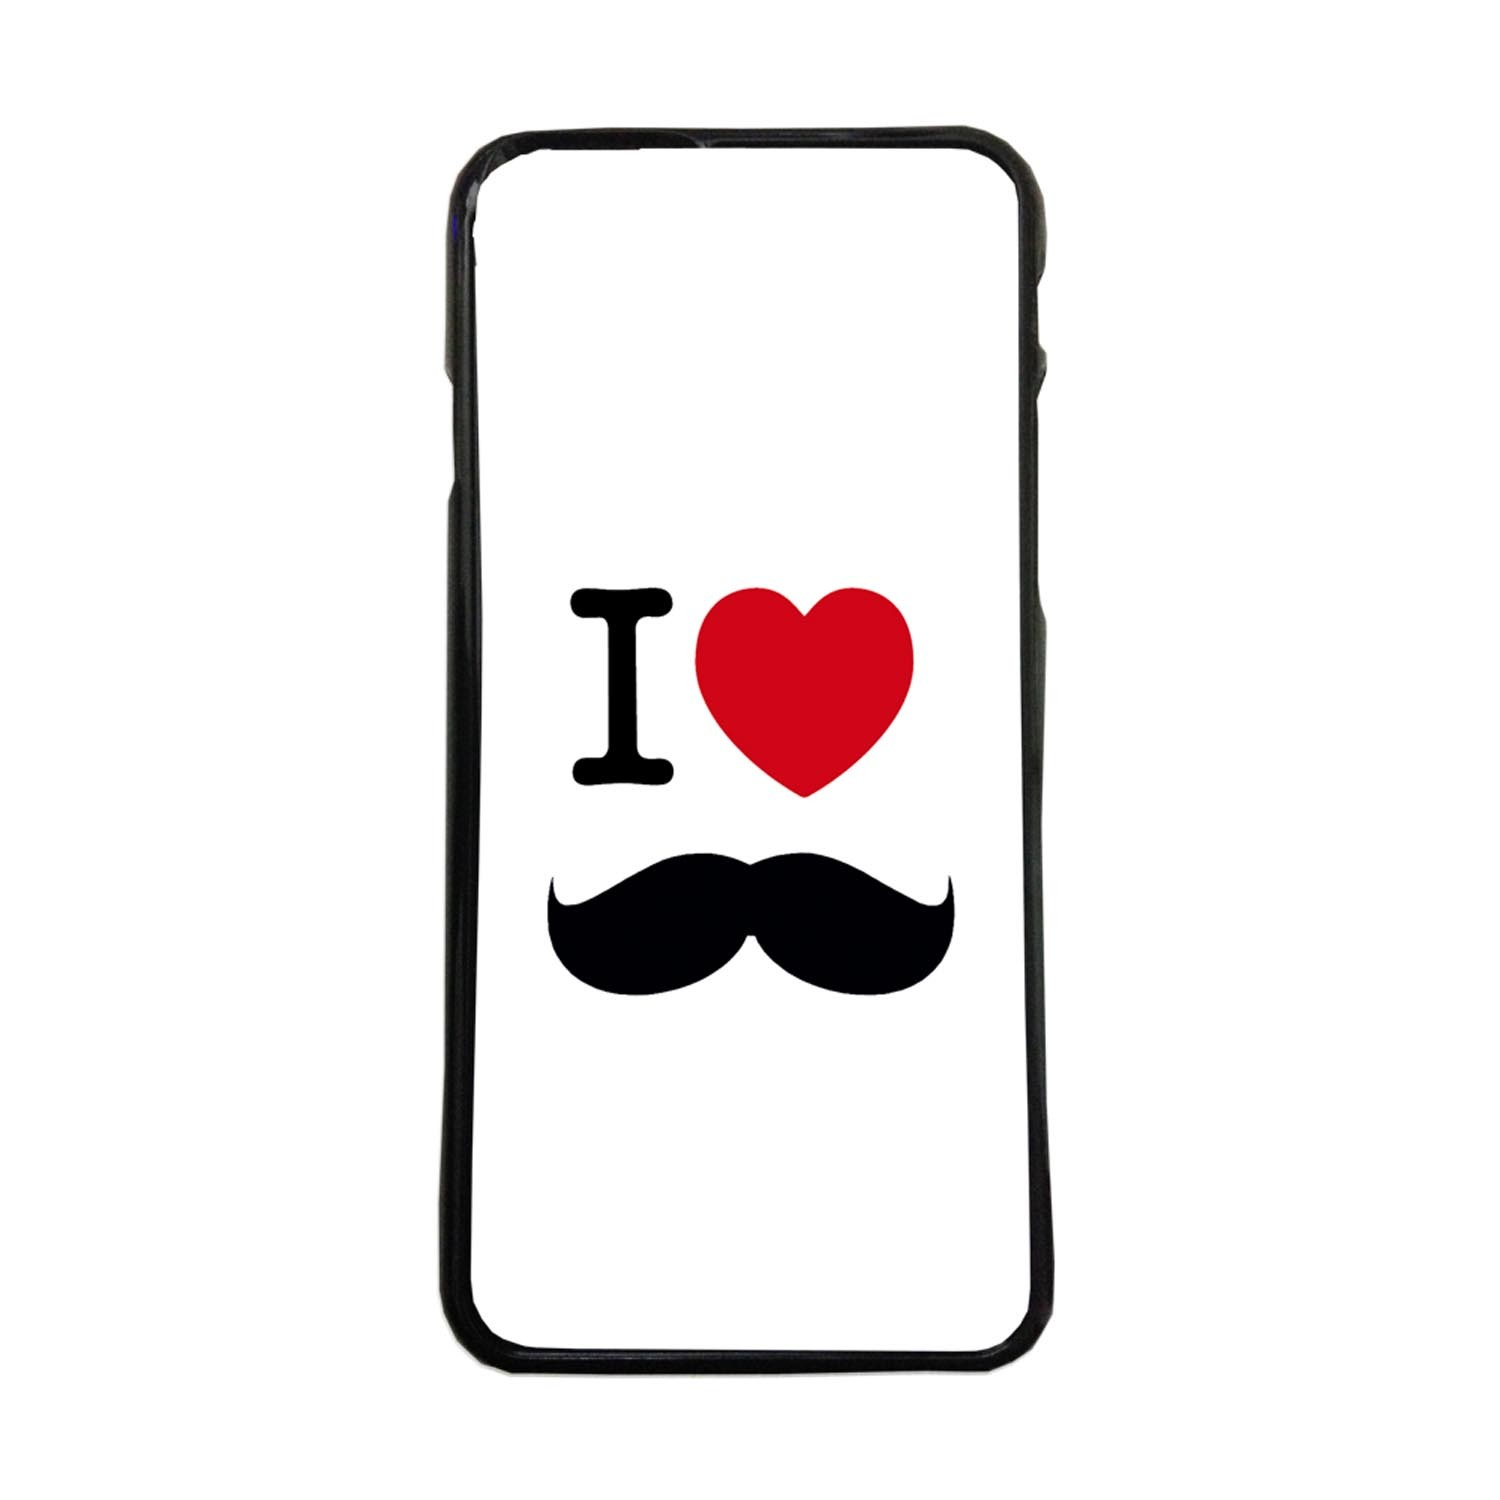 Fundas movil carcasas compatible con sony xperia x modelo I love bigotes